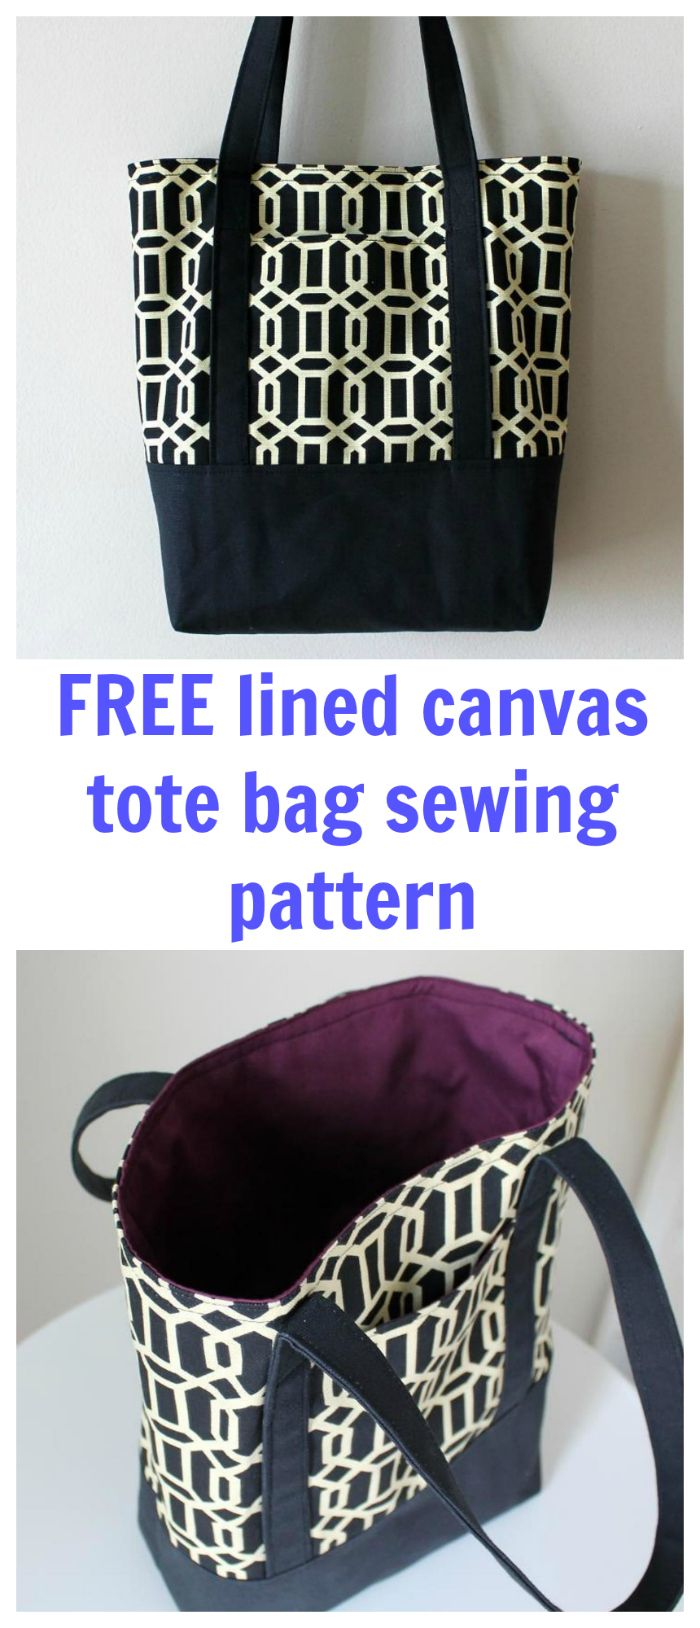 FREE lined canvas tote bag sewing pattern ready for download ...